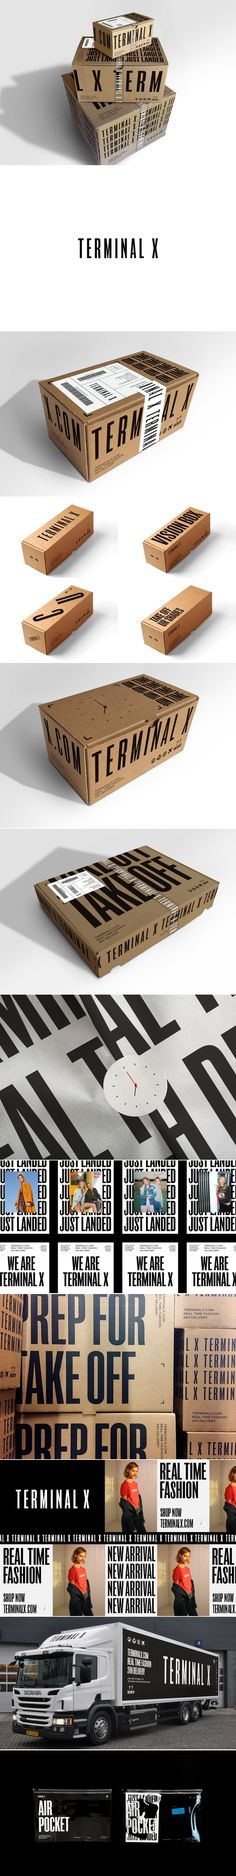 Terminal X is a Hot Fashion Brand With Sleek Typography That Speaks For Itself — The Dieline | Packaging & Branding Design & Innovation News